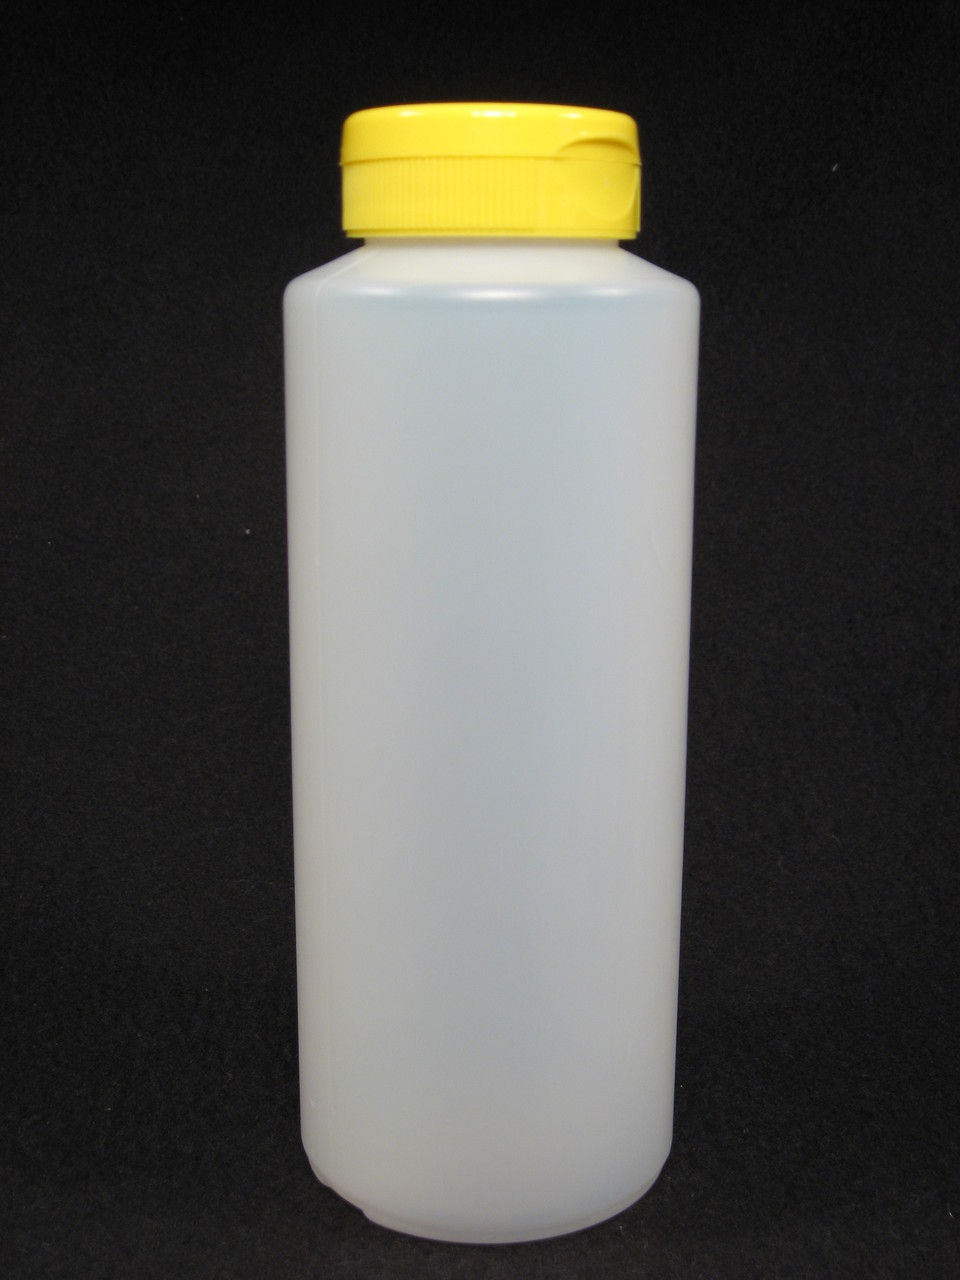 16 oz. Cylinder honey bottles - case of 24 with yellow flip top lids